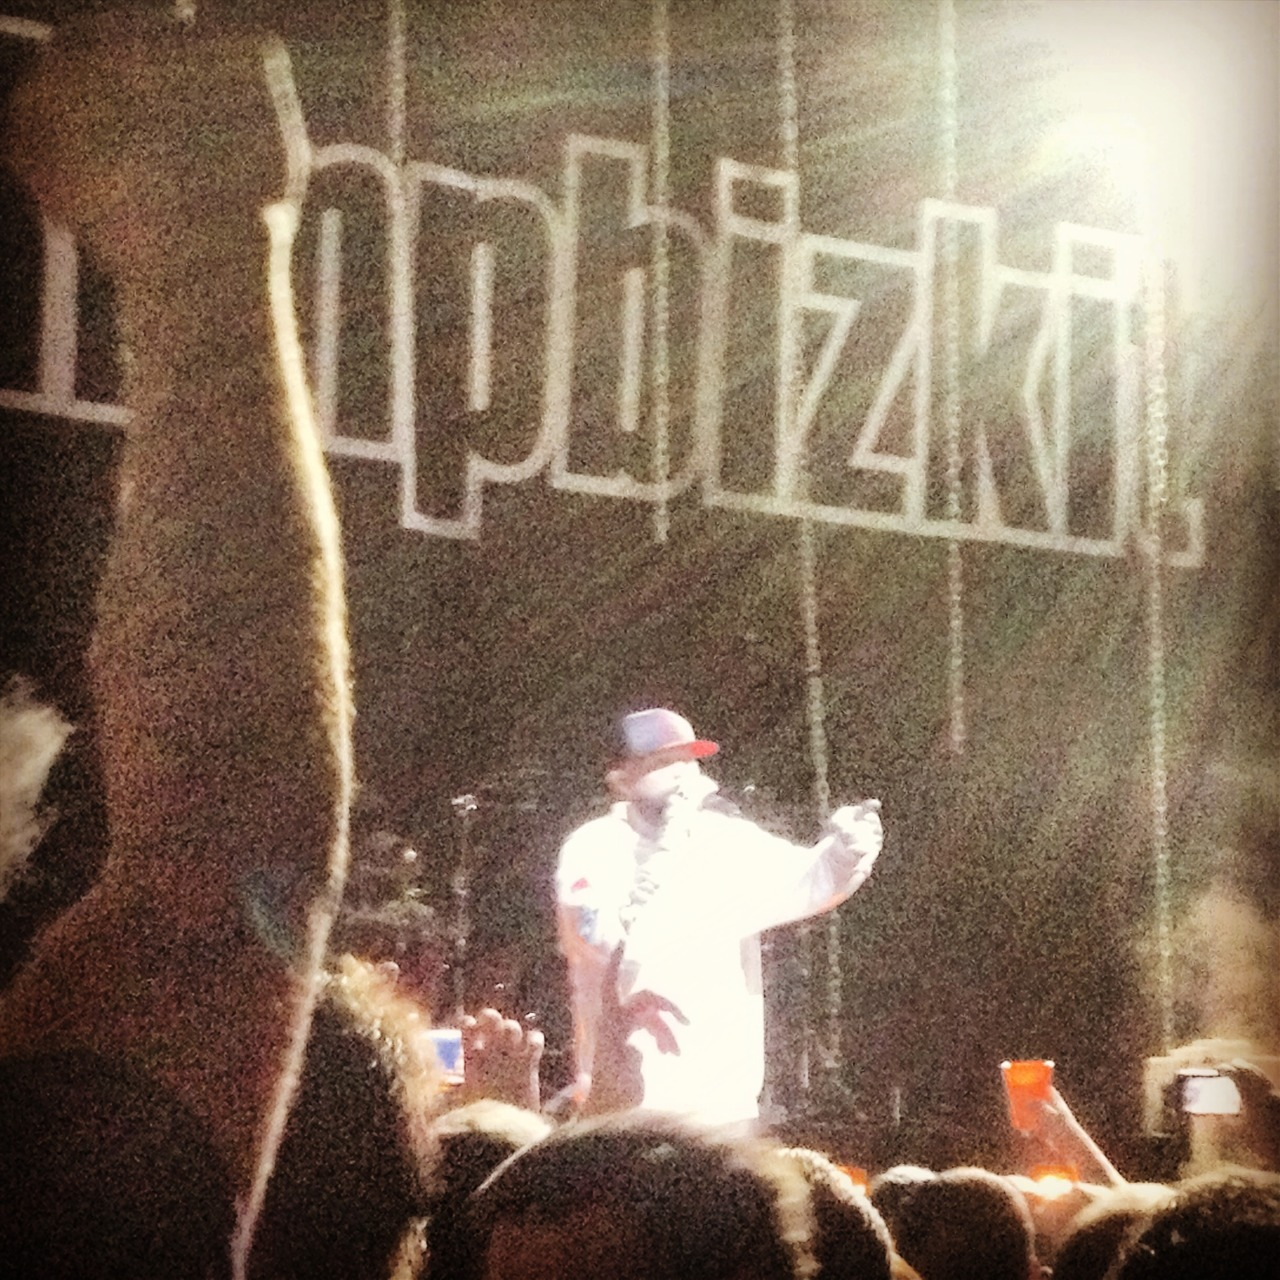 Had so much fun at the show the other night!!! Welcome back limp bizkit!!